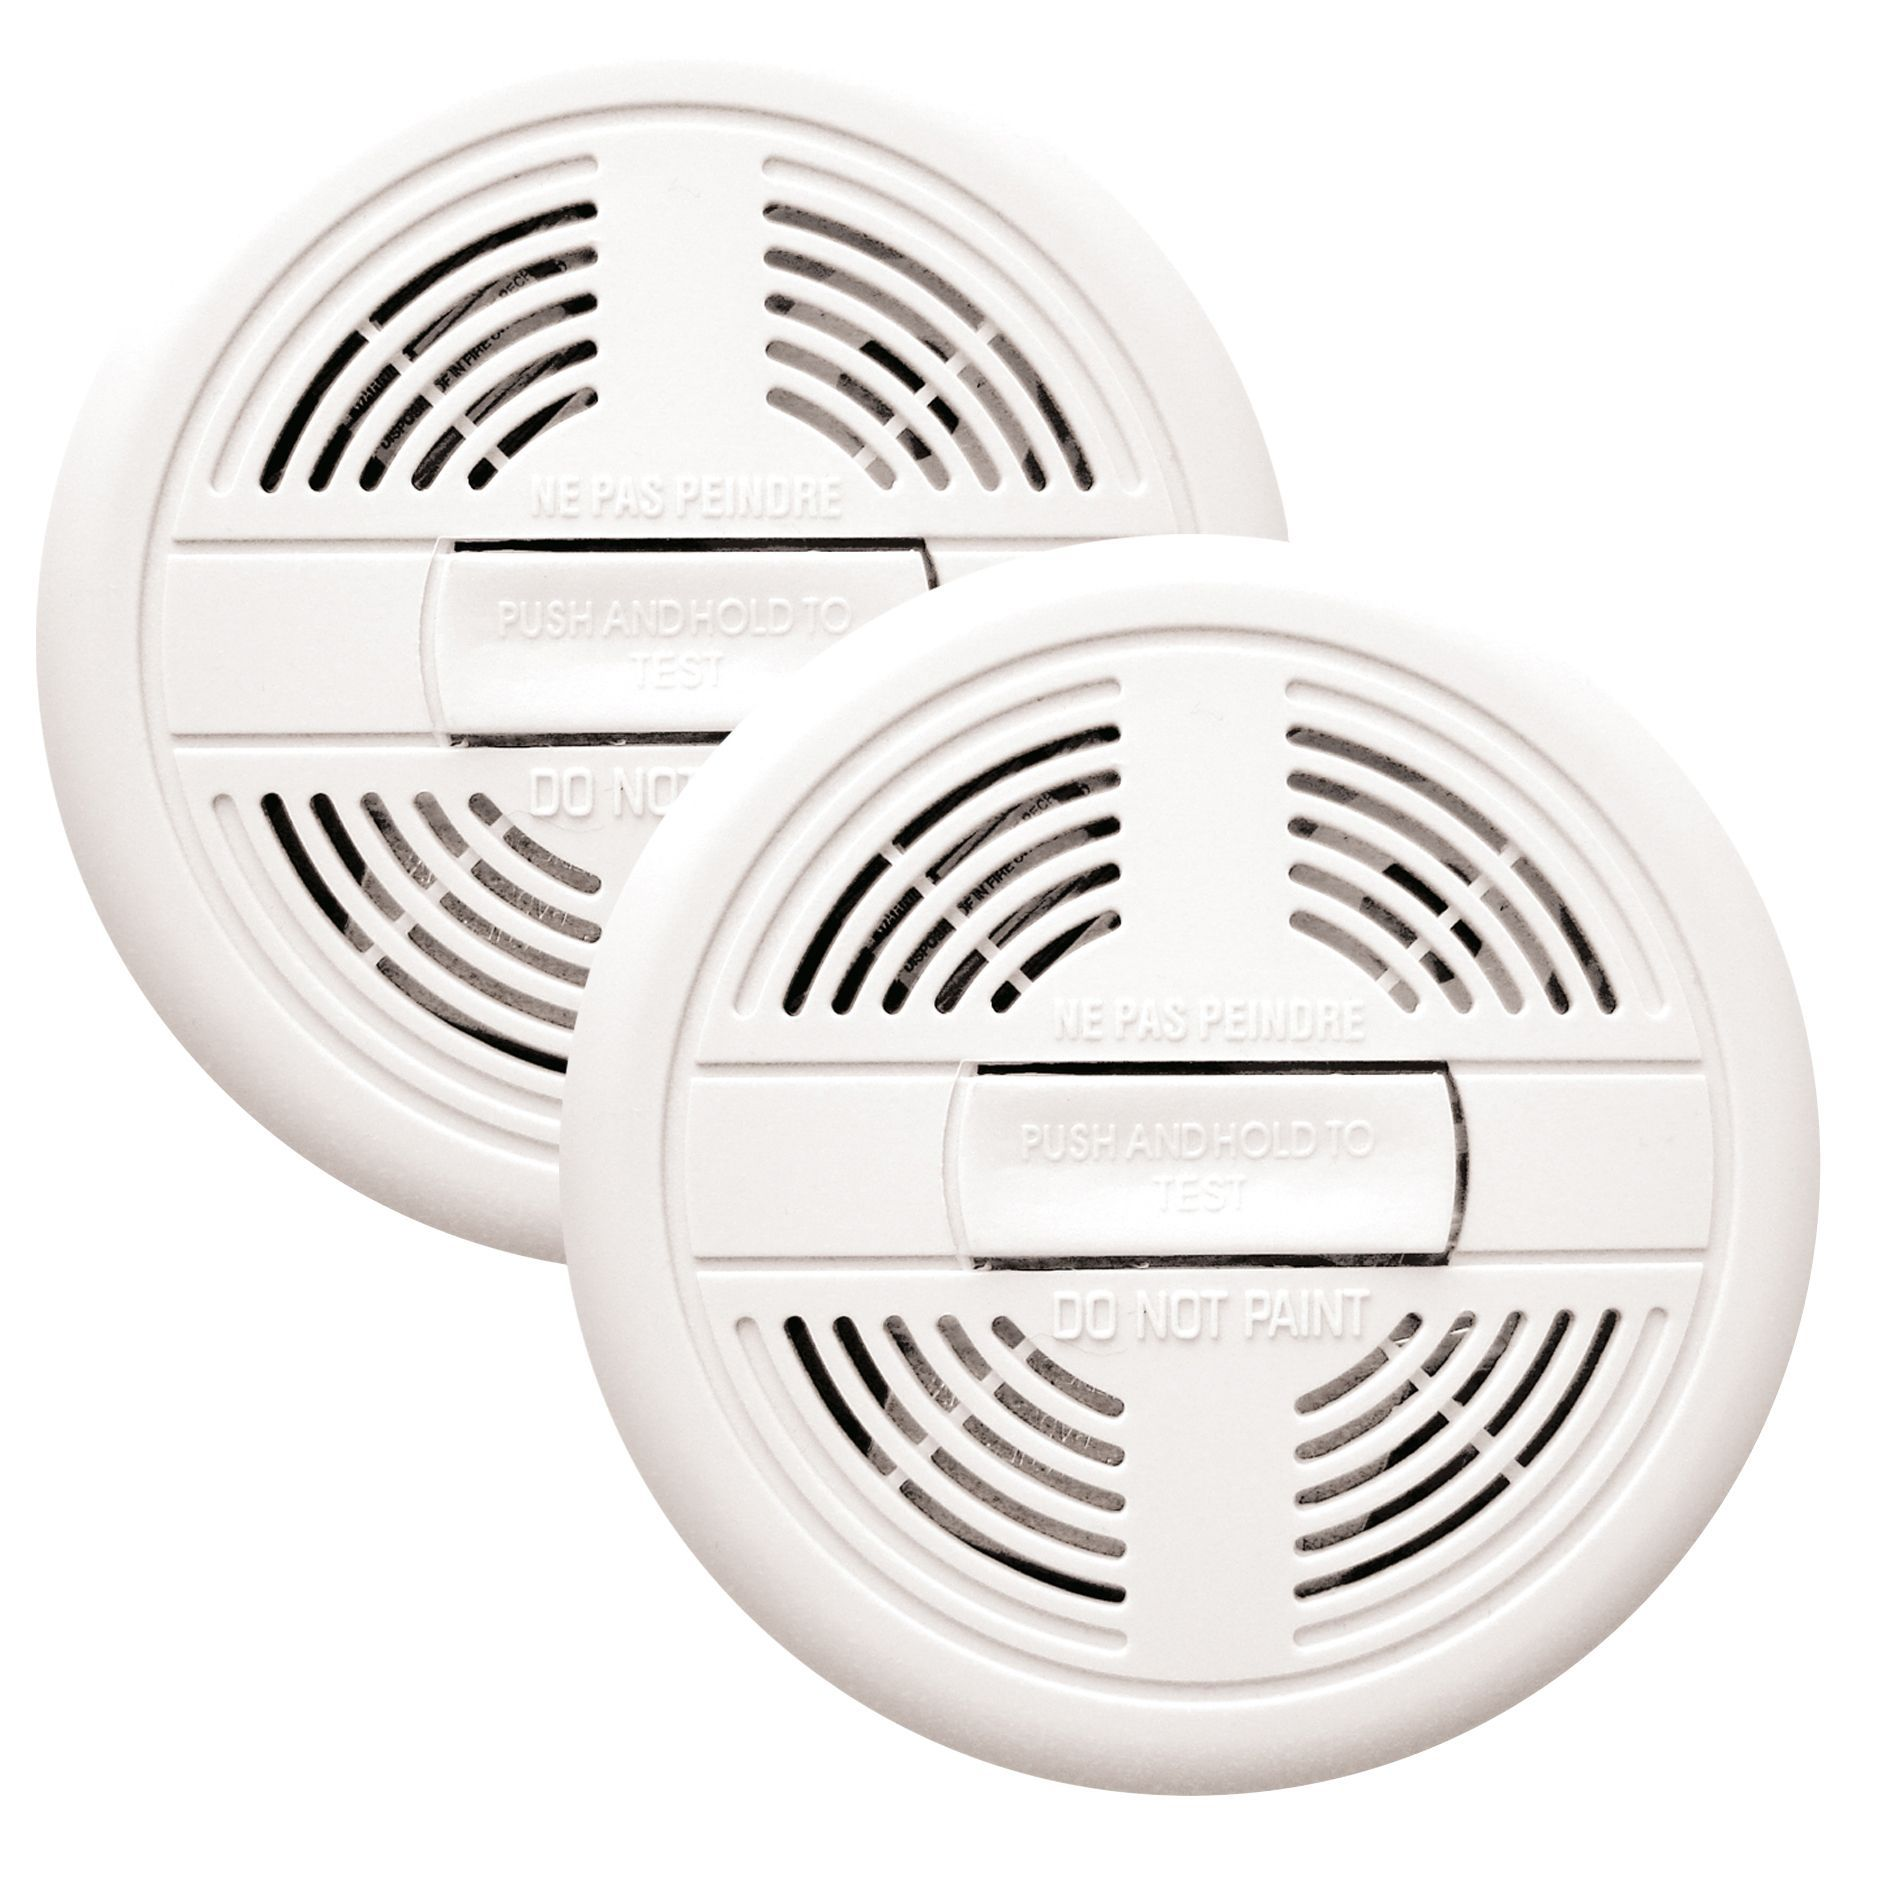 first alert ionisation smoke alarm pack of 2 departments diy at bu0026q - First Alert Smoke Alarm